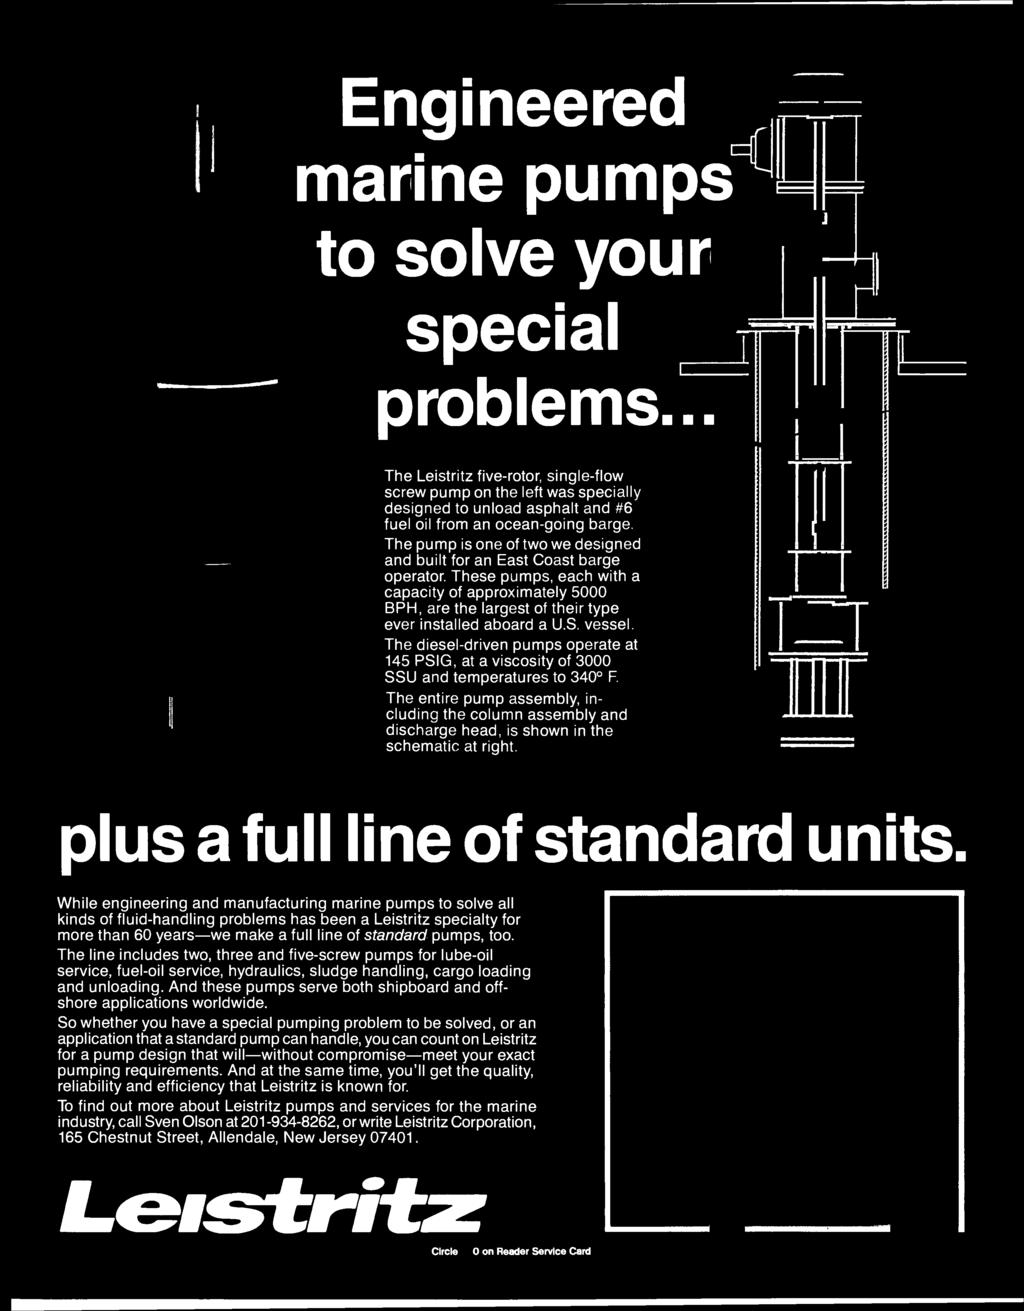 Engineered marine pumps^ to solve your special ^ problems.